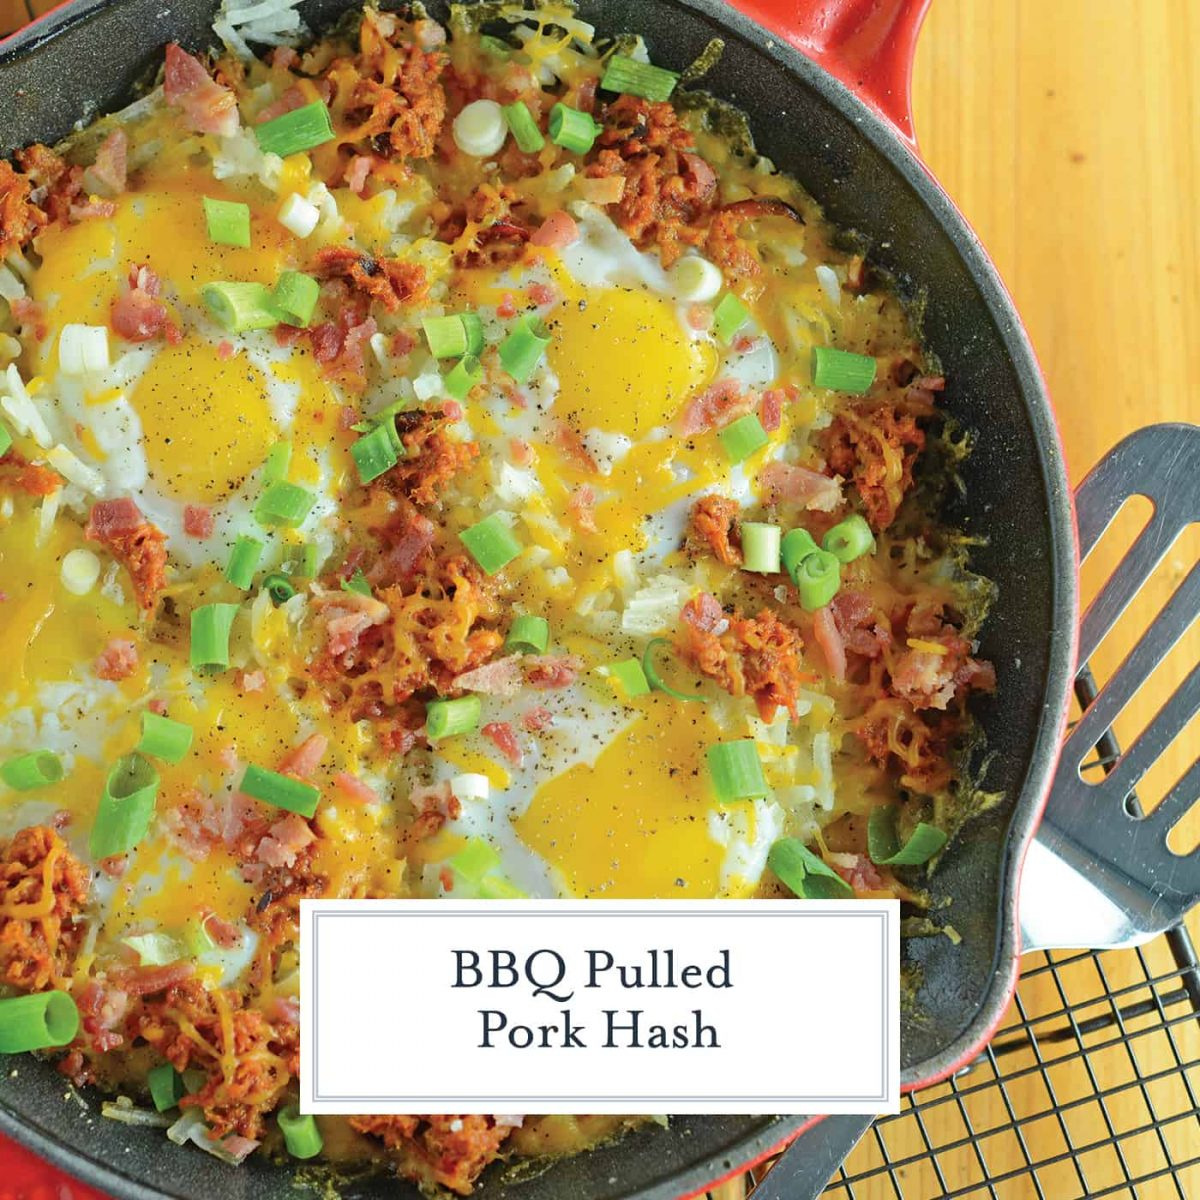 BBQ Pulled Pork Hash is my hands down, favorite Sunday brunch recipe. Ready in only 15 minutes and easily modified, it is simple and tasty. #bbqpulledpork #breakfasthash www.savoryexperiments.com